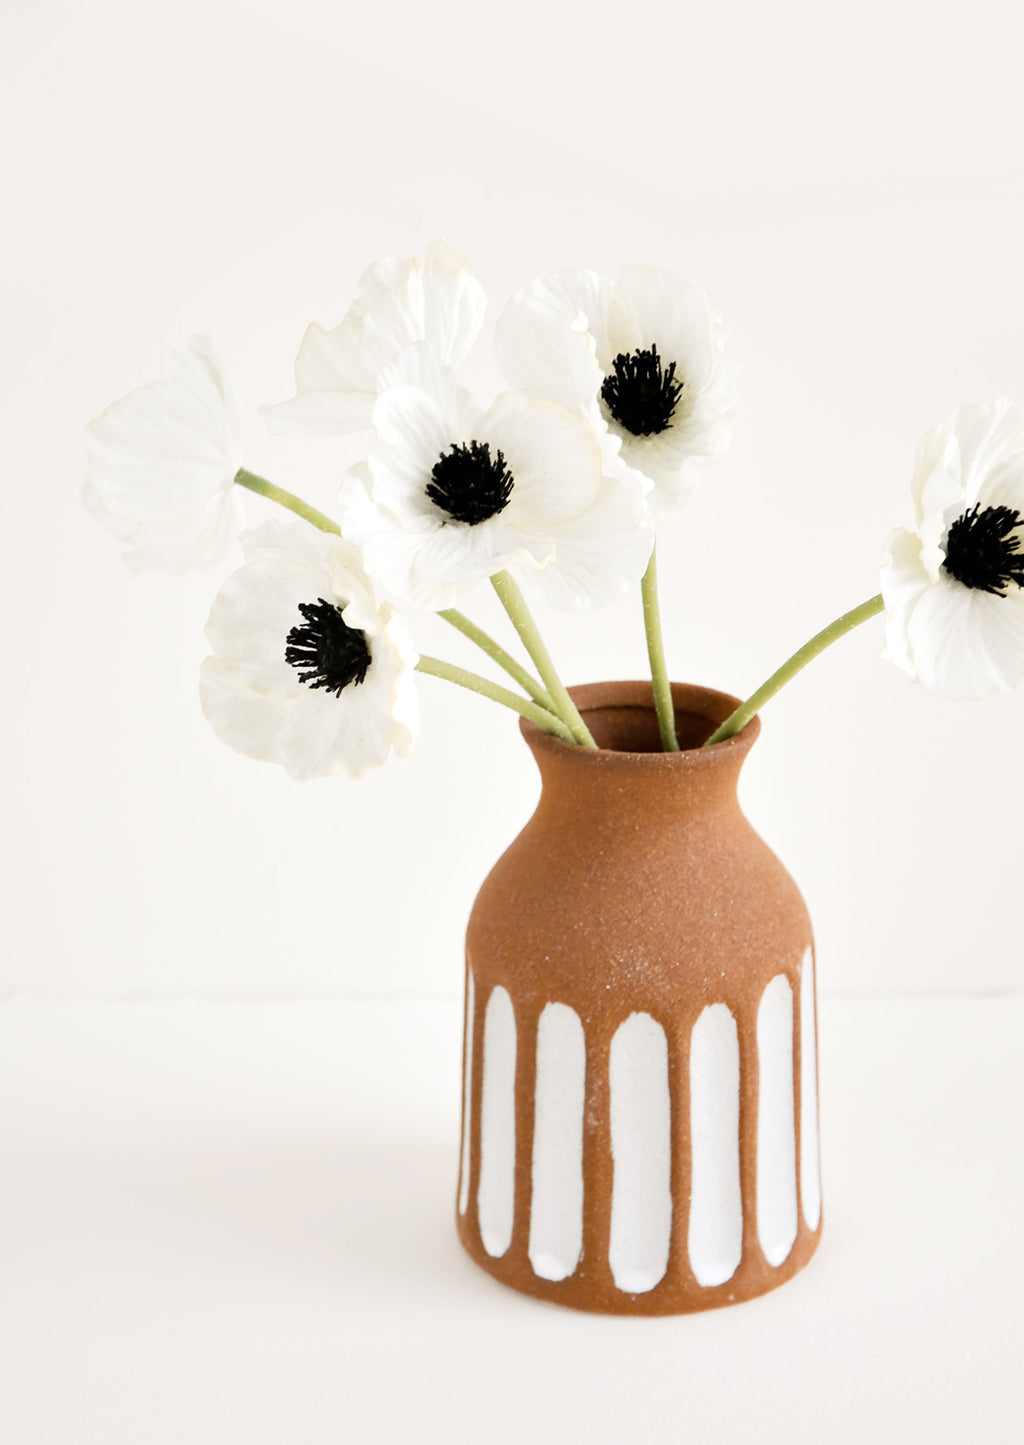 2: Brown Unglazed Ceramic Vase with Contrasting Vertical Stripe Detailing in White, displaying anemone flowers.